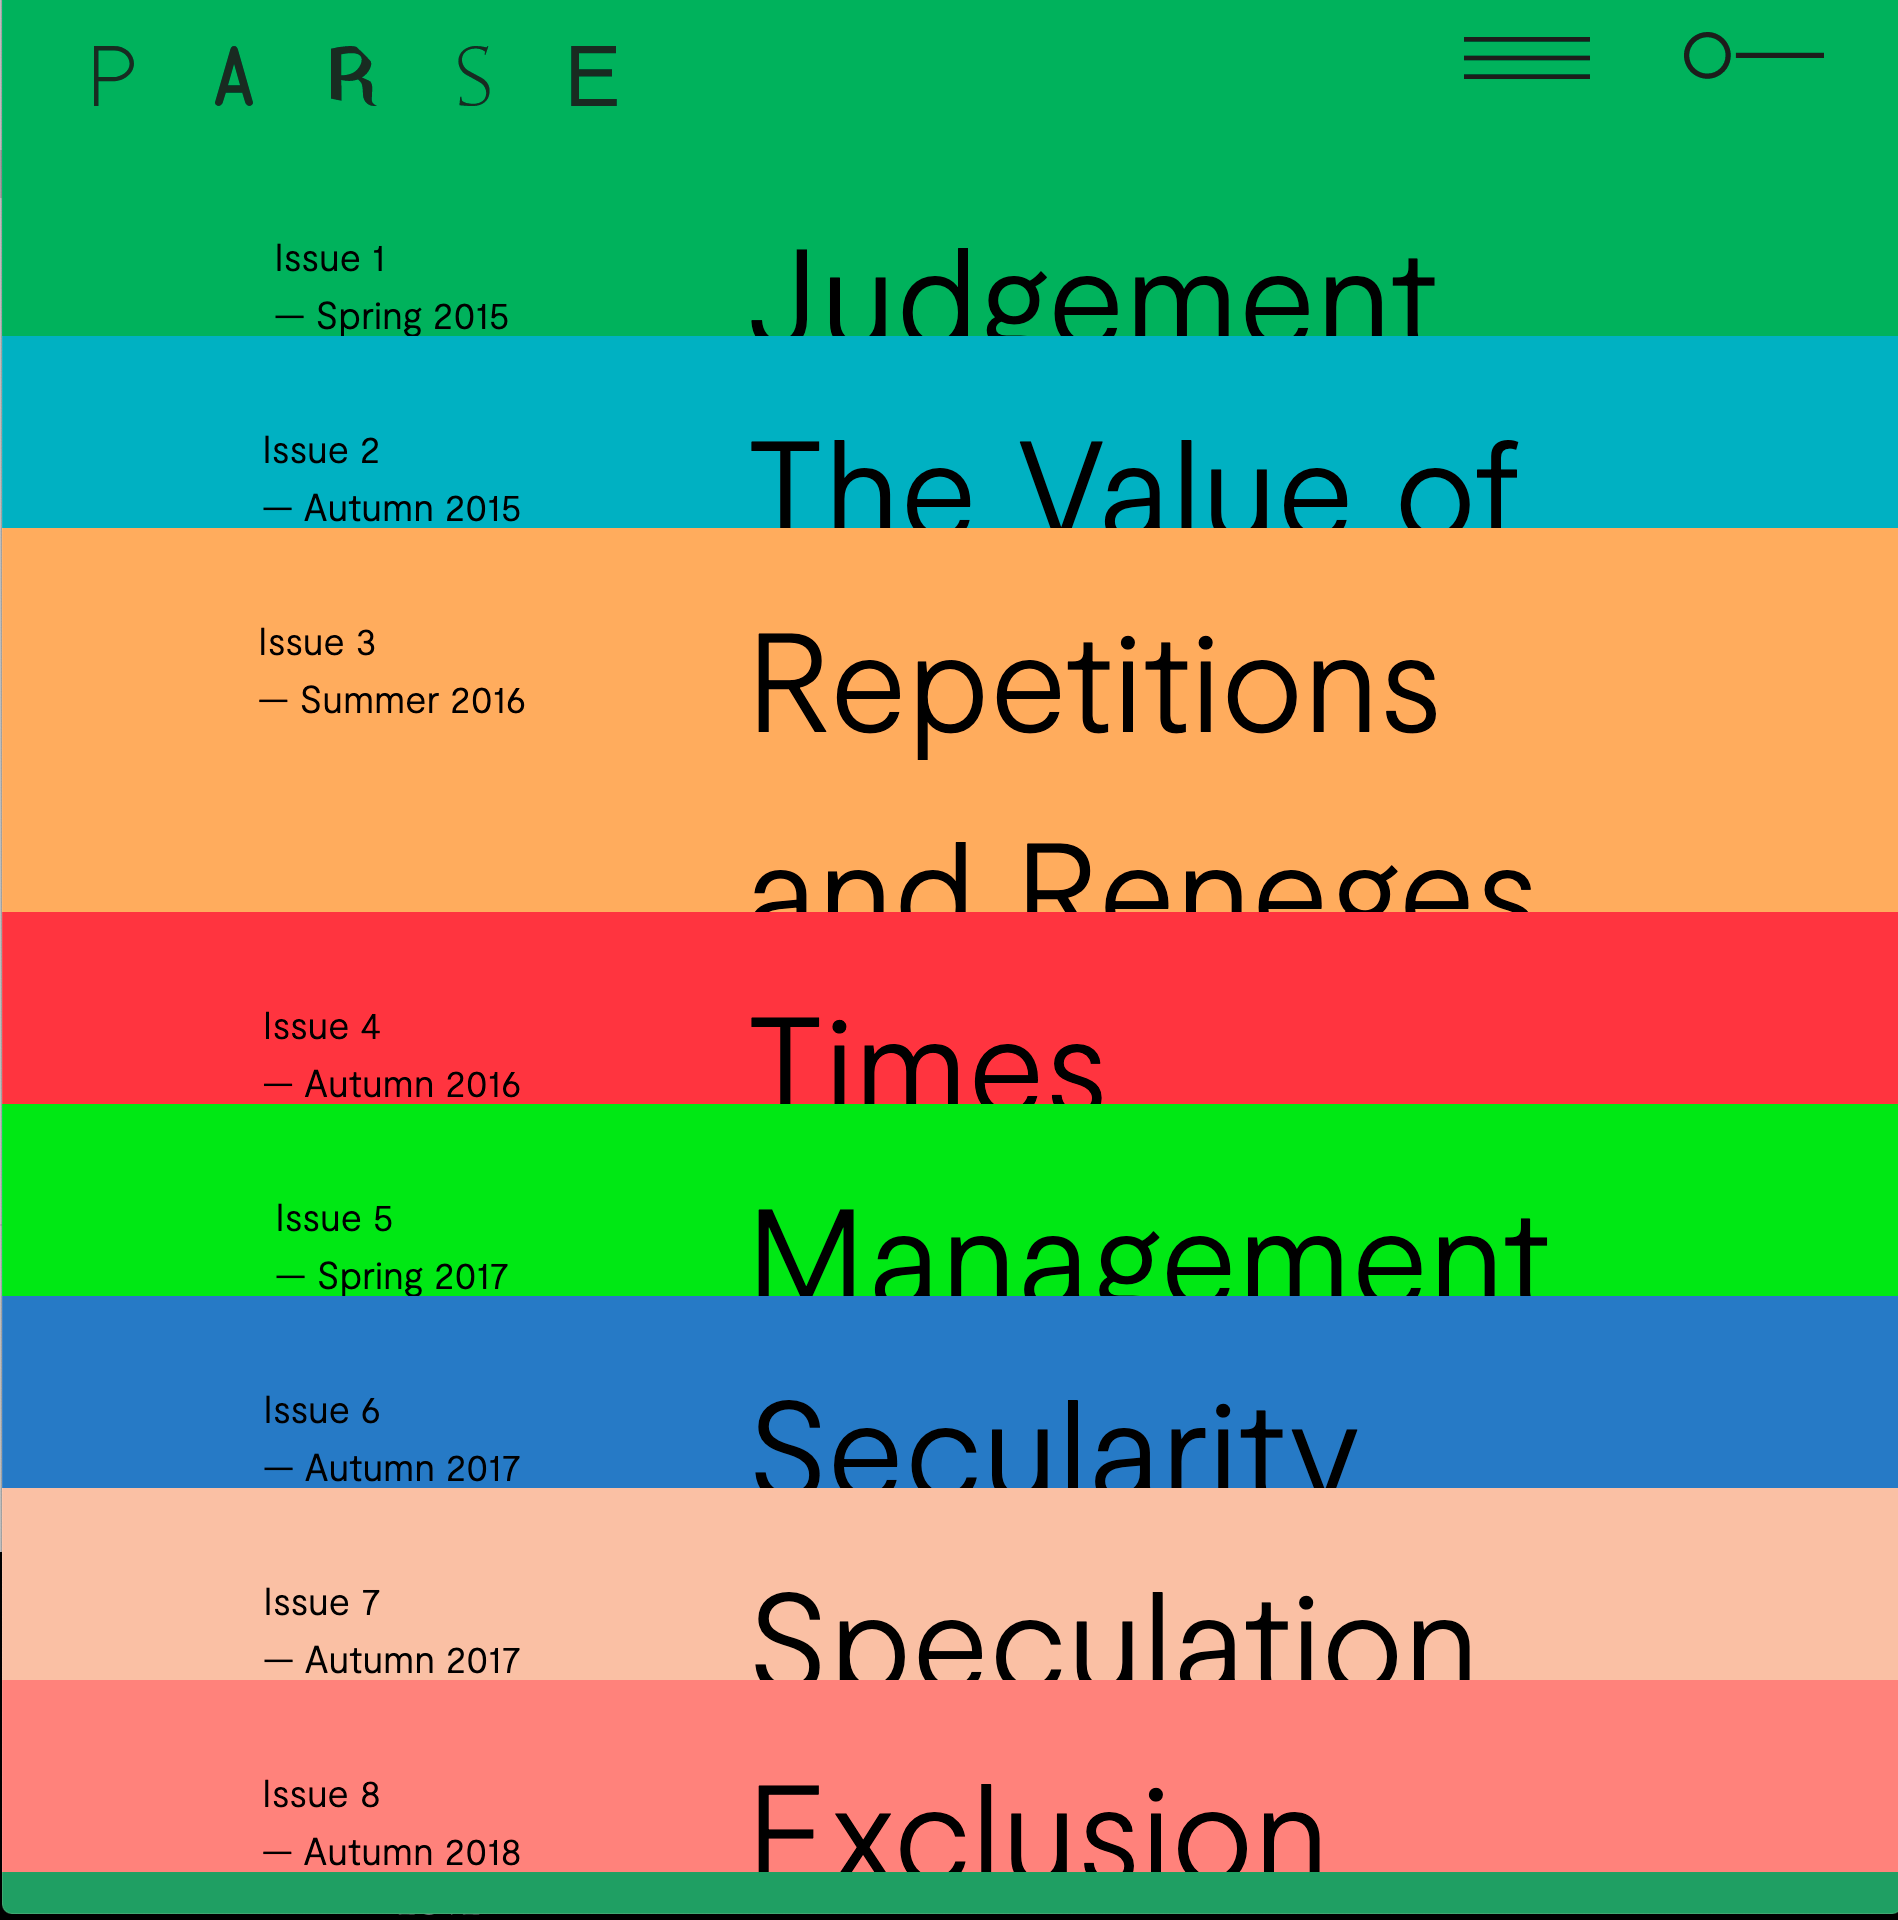 PARSE Journal: On the Question of Exhibition